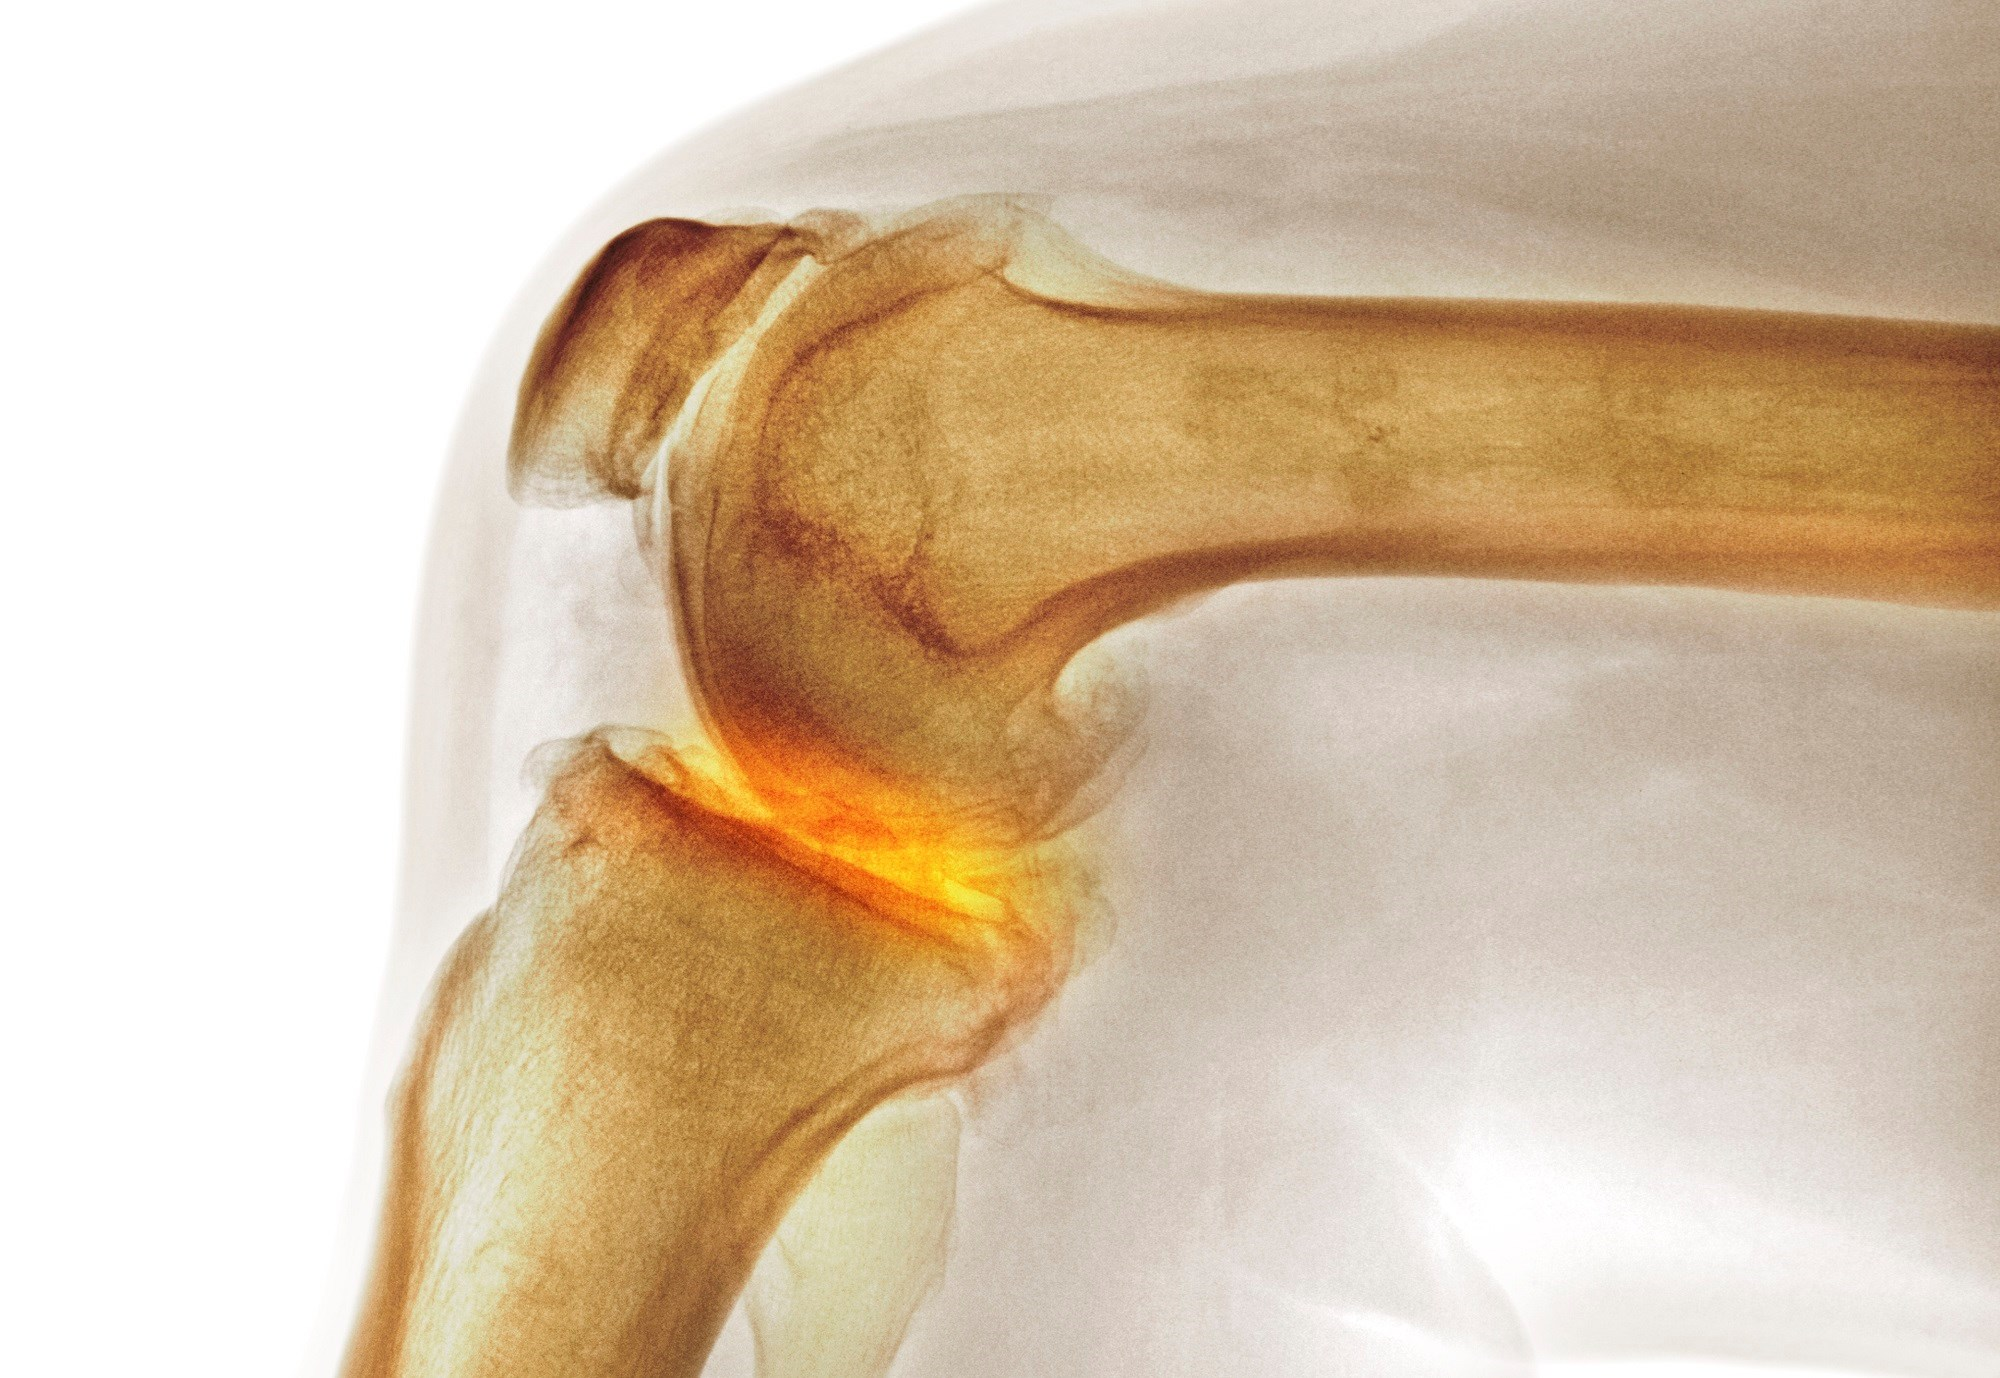 Hormone Therapy Linked to Reduced Symptomatic Knee OA in Postmenopausal Women